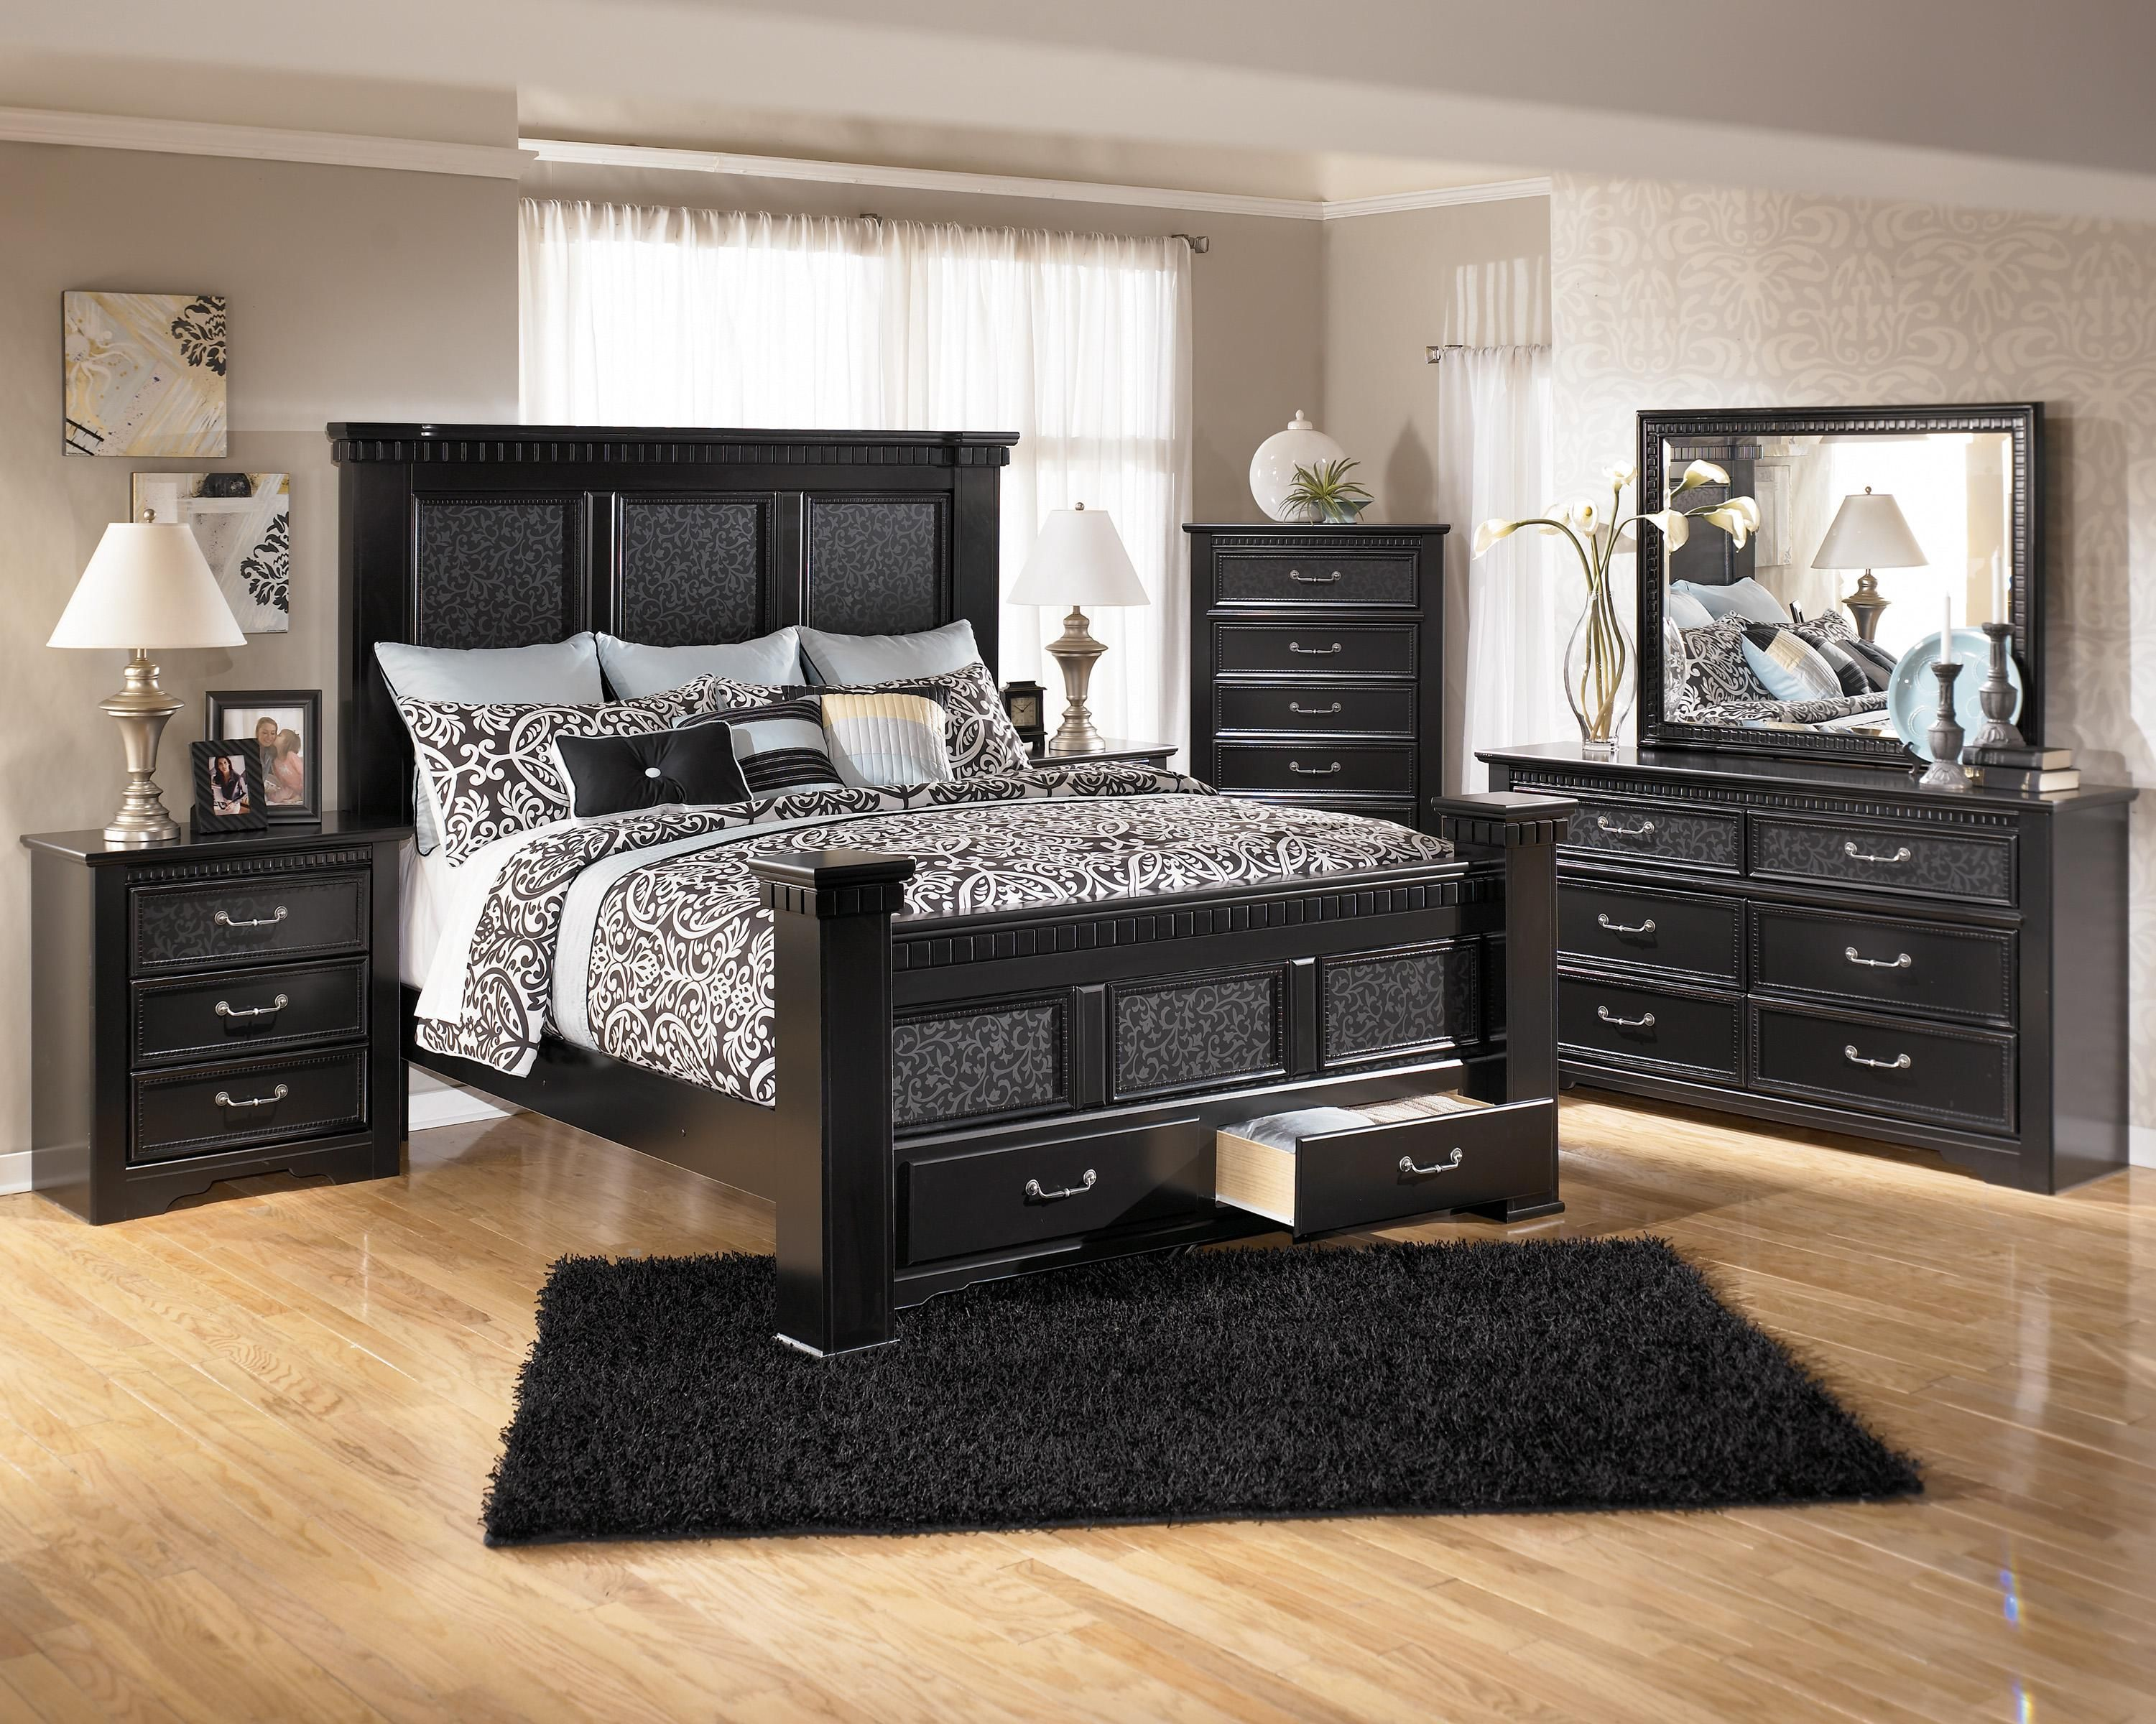 delightful home cal bedroom king ashley ashleyfurniture sets com furniture